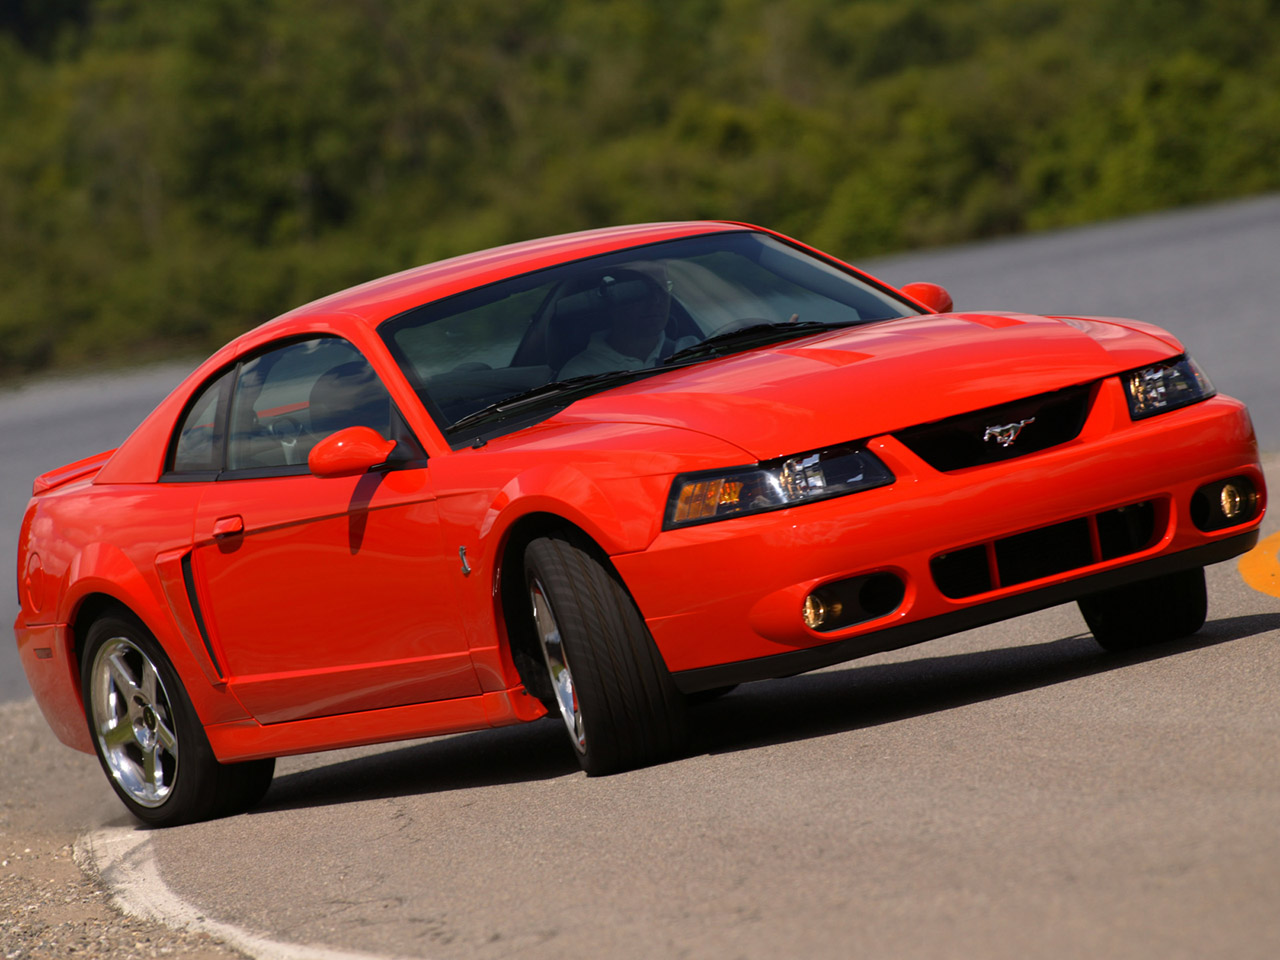 Ford Mustang 1999 #1.